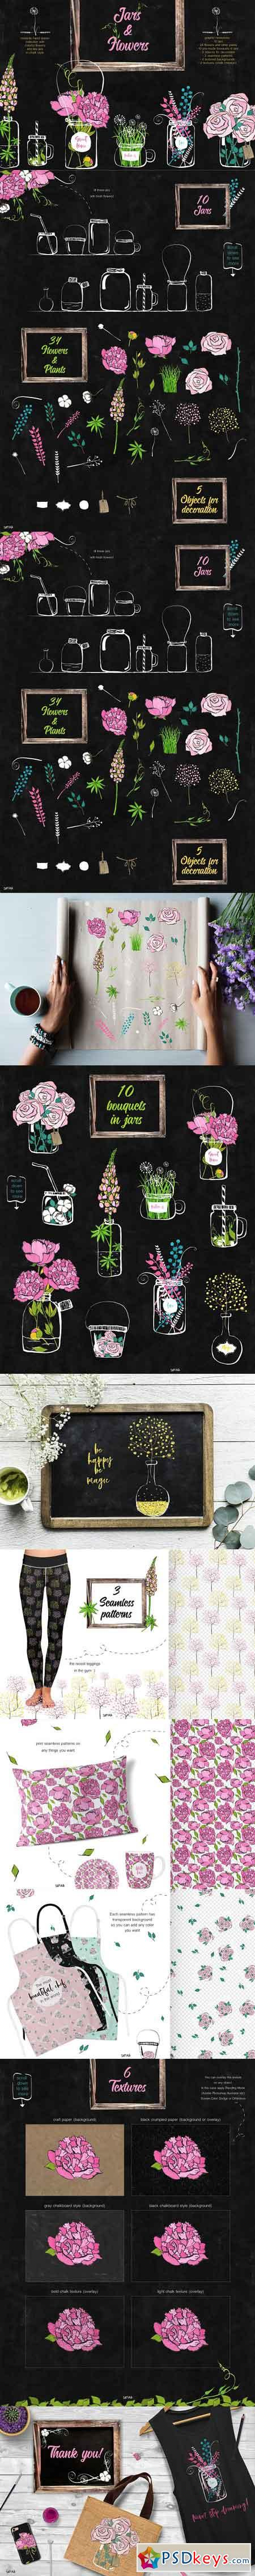 Flowers and jars clipart collection 2692627